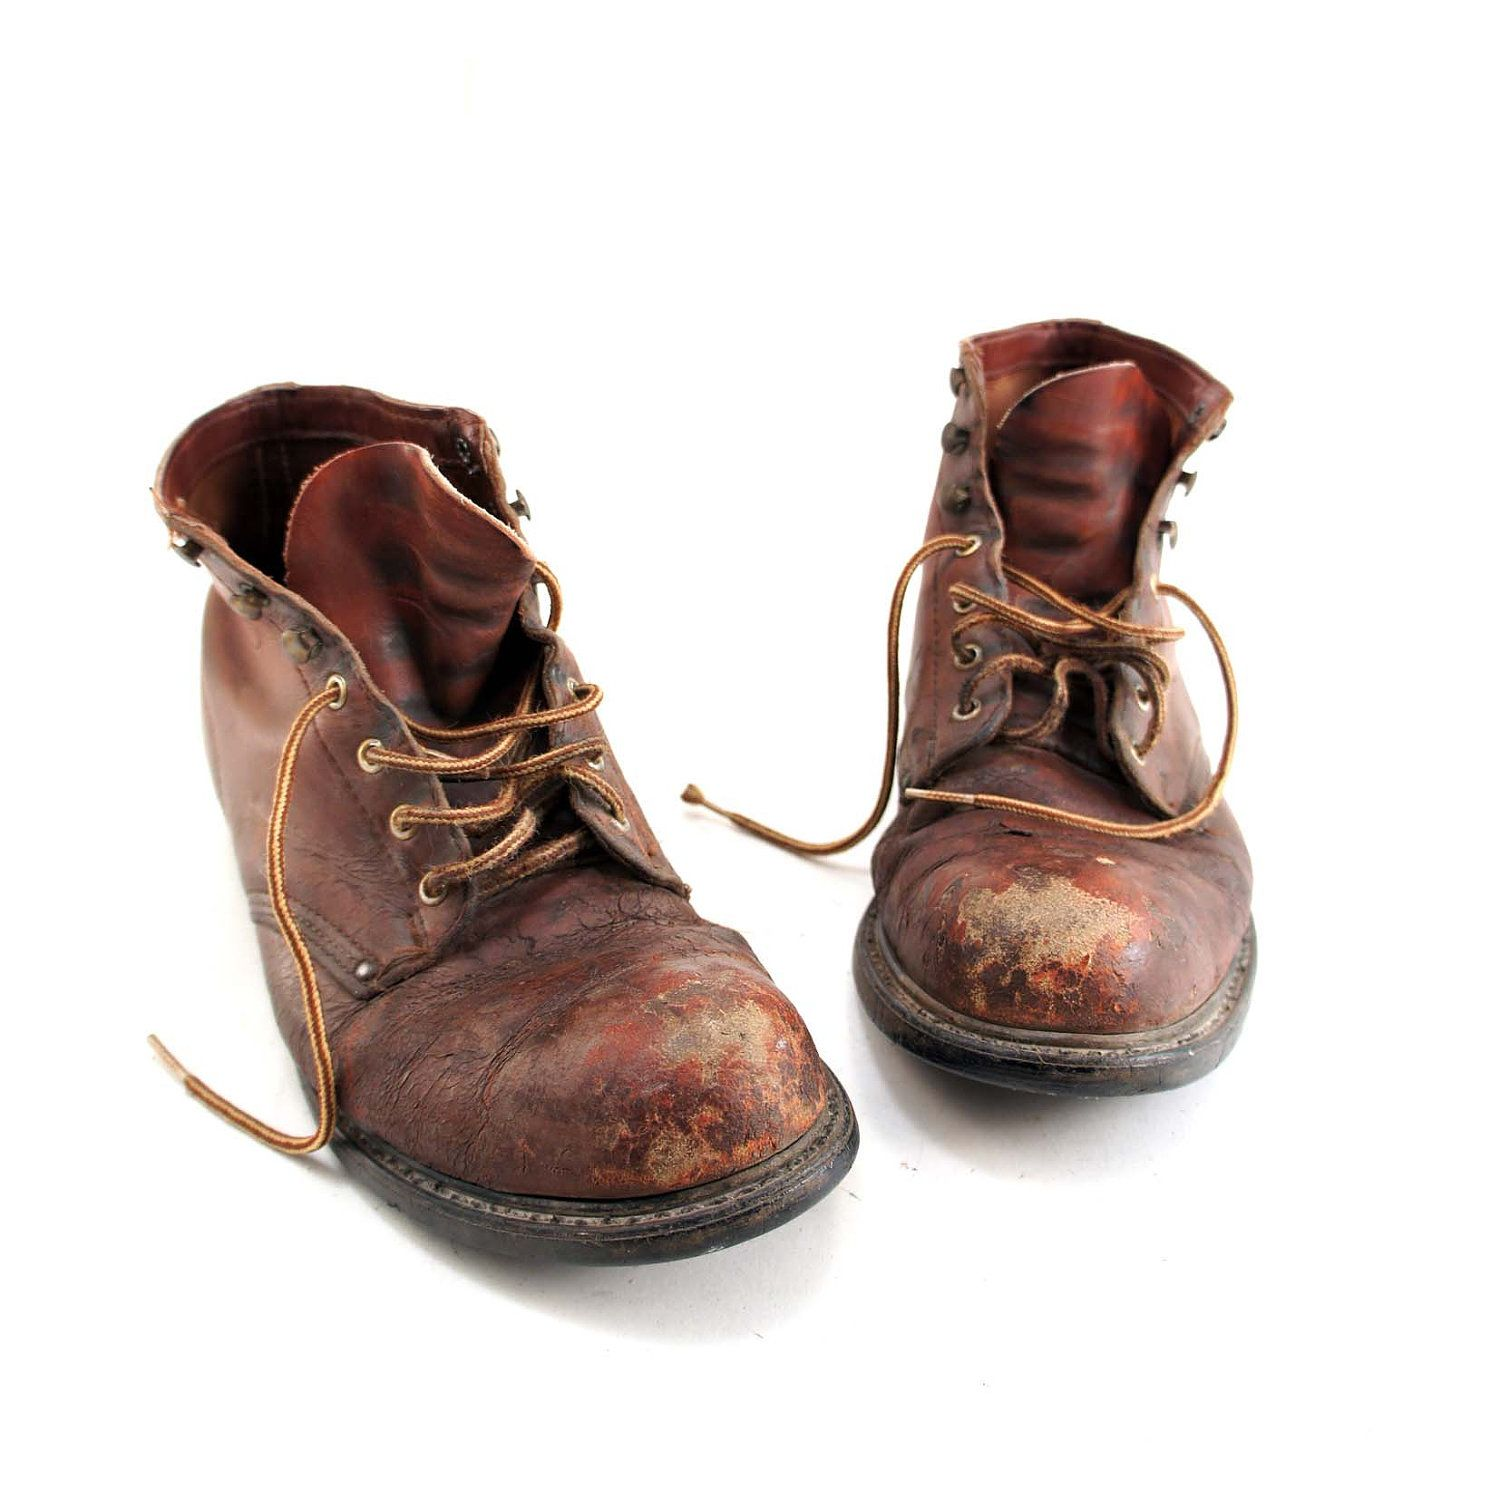 74ae2f42a5aa0 Distressed Steel Toe Work Boots in Old Fashioned Miner Style for a ...